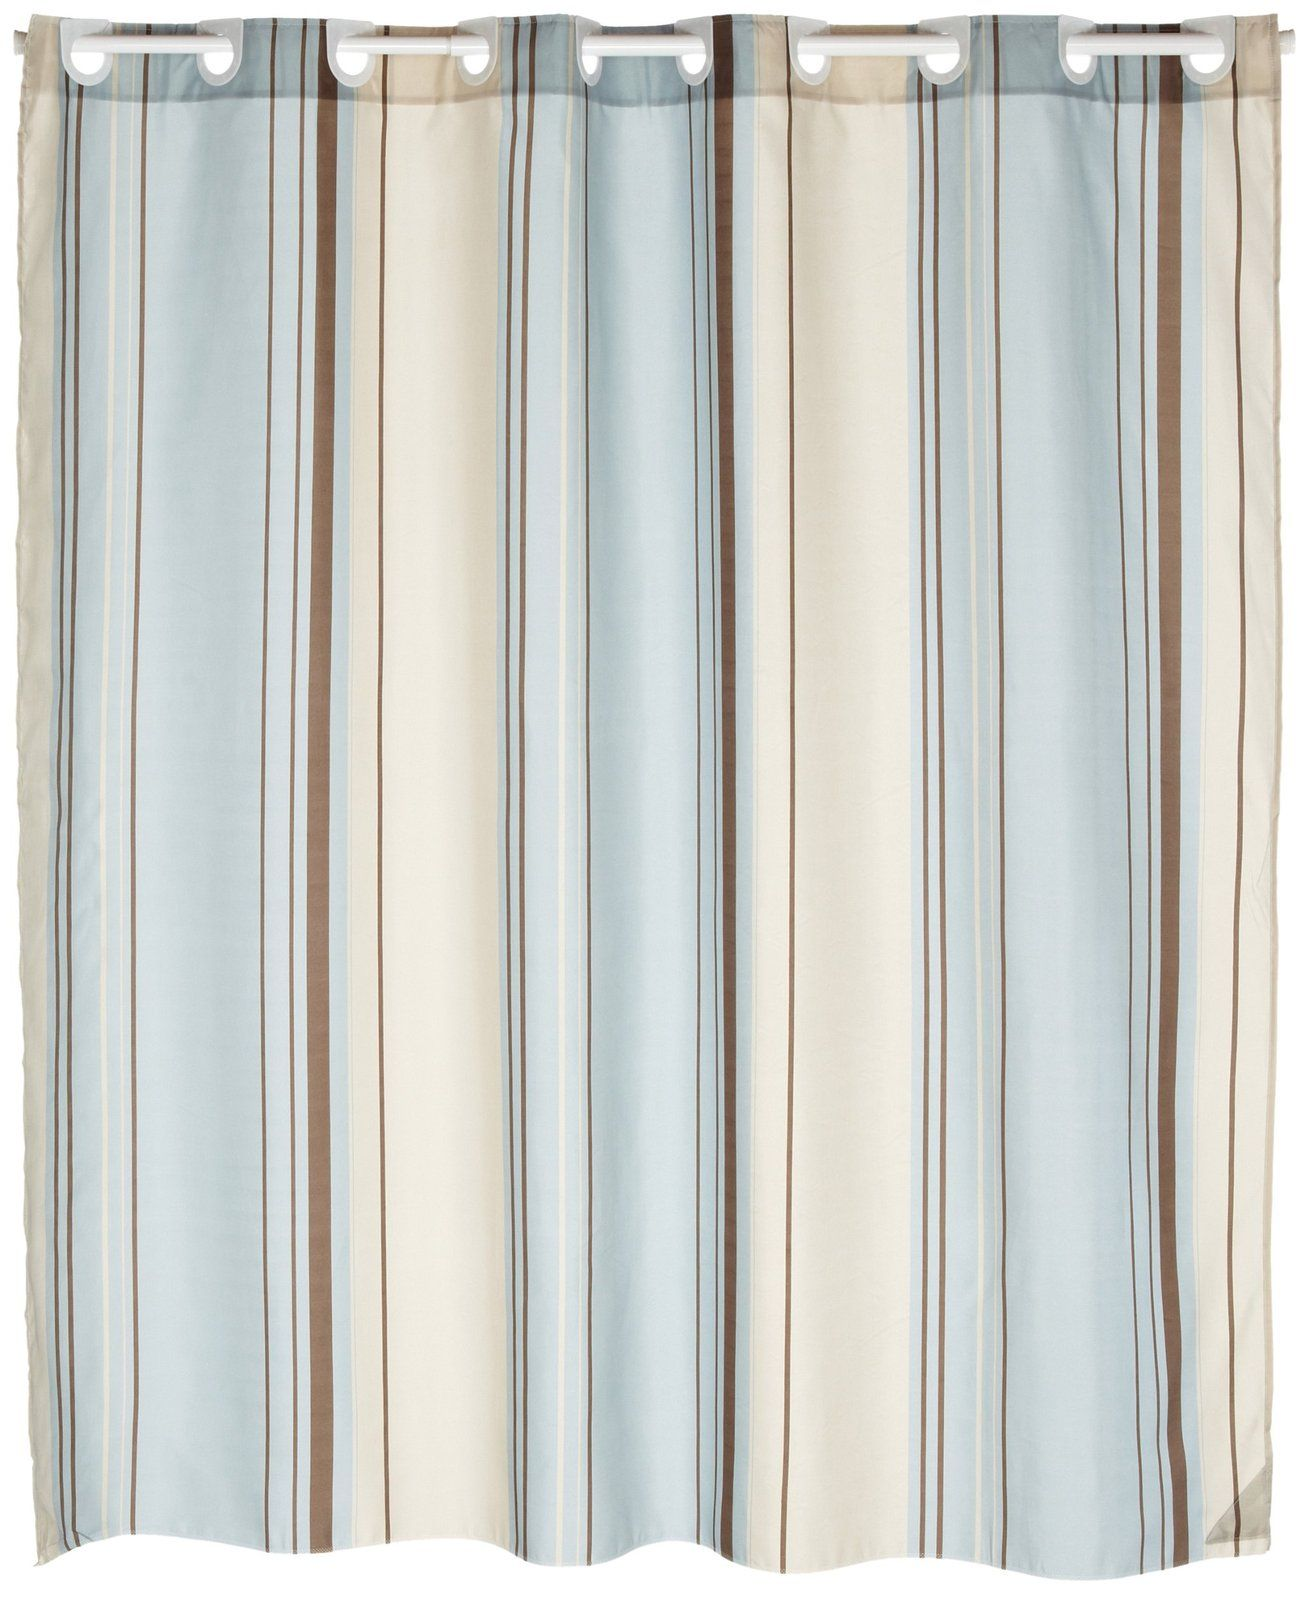 Carnation Home Fashions Ez On Fabric Shower Curtain Blue Stripes Free Shipping With Images Blue And Brown